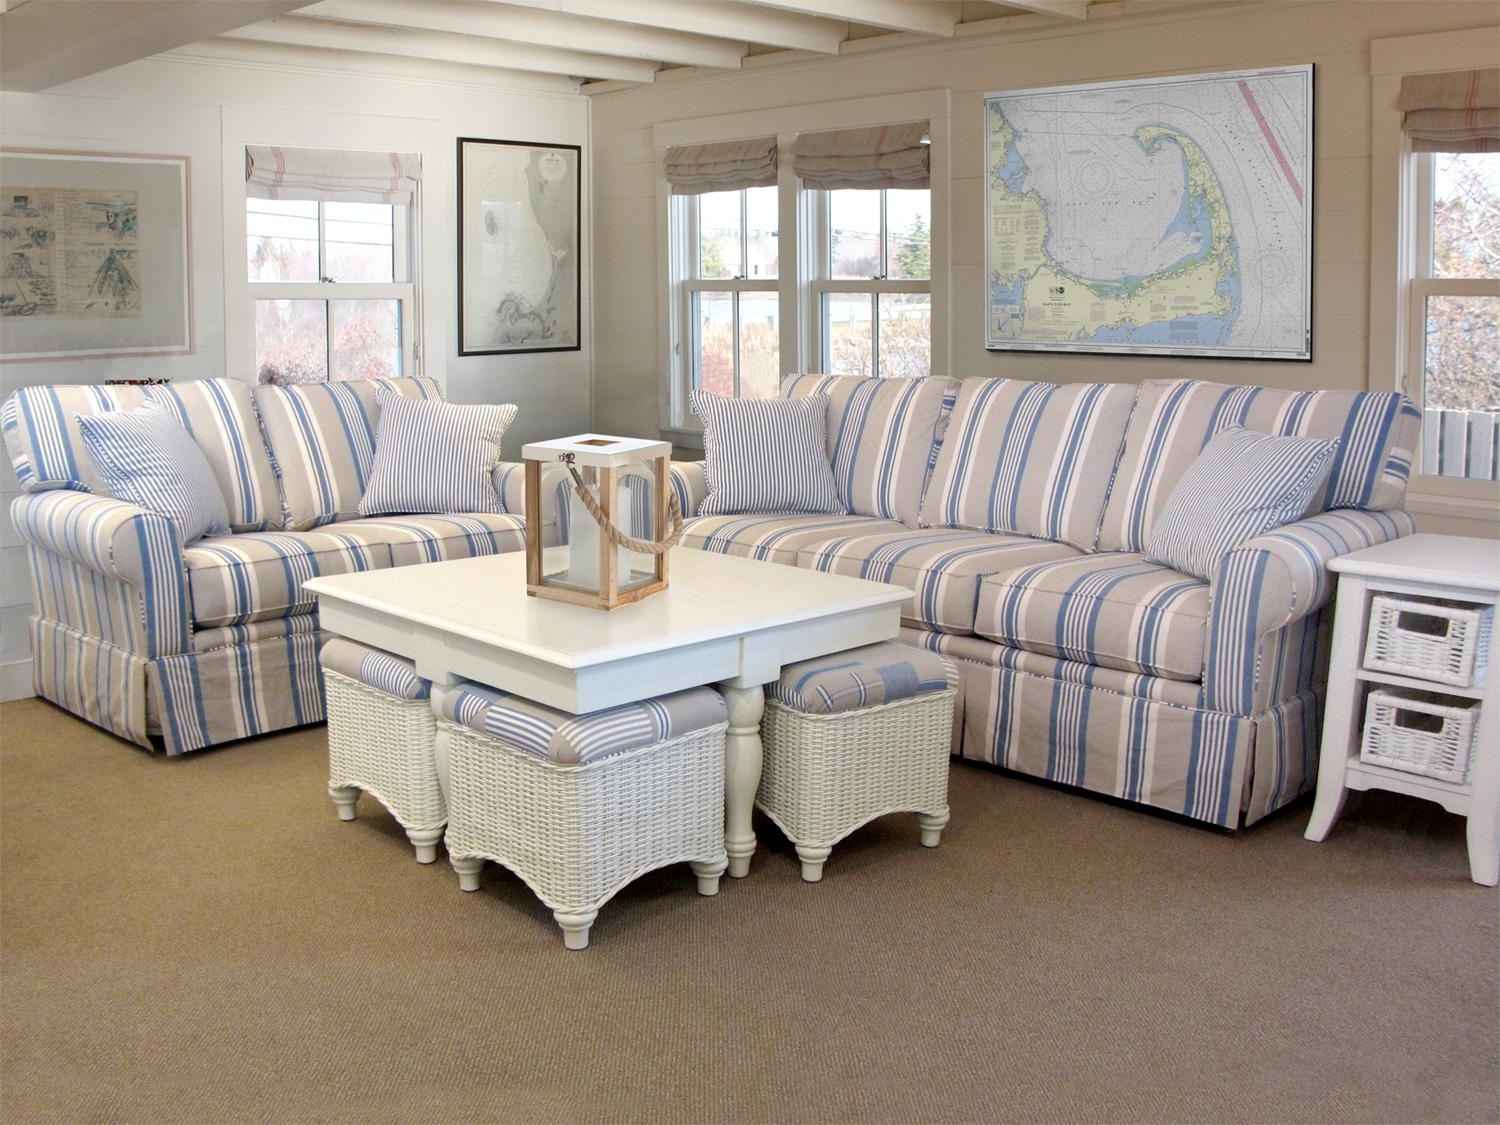 Awning Stripe Sofa | Barbos Furniture Within Blue And White Striped Sofas (View 2 of 20)